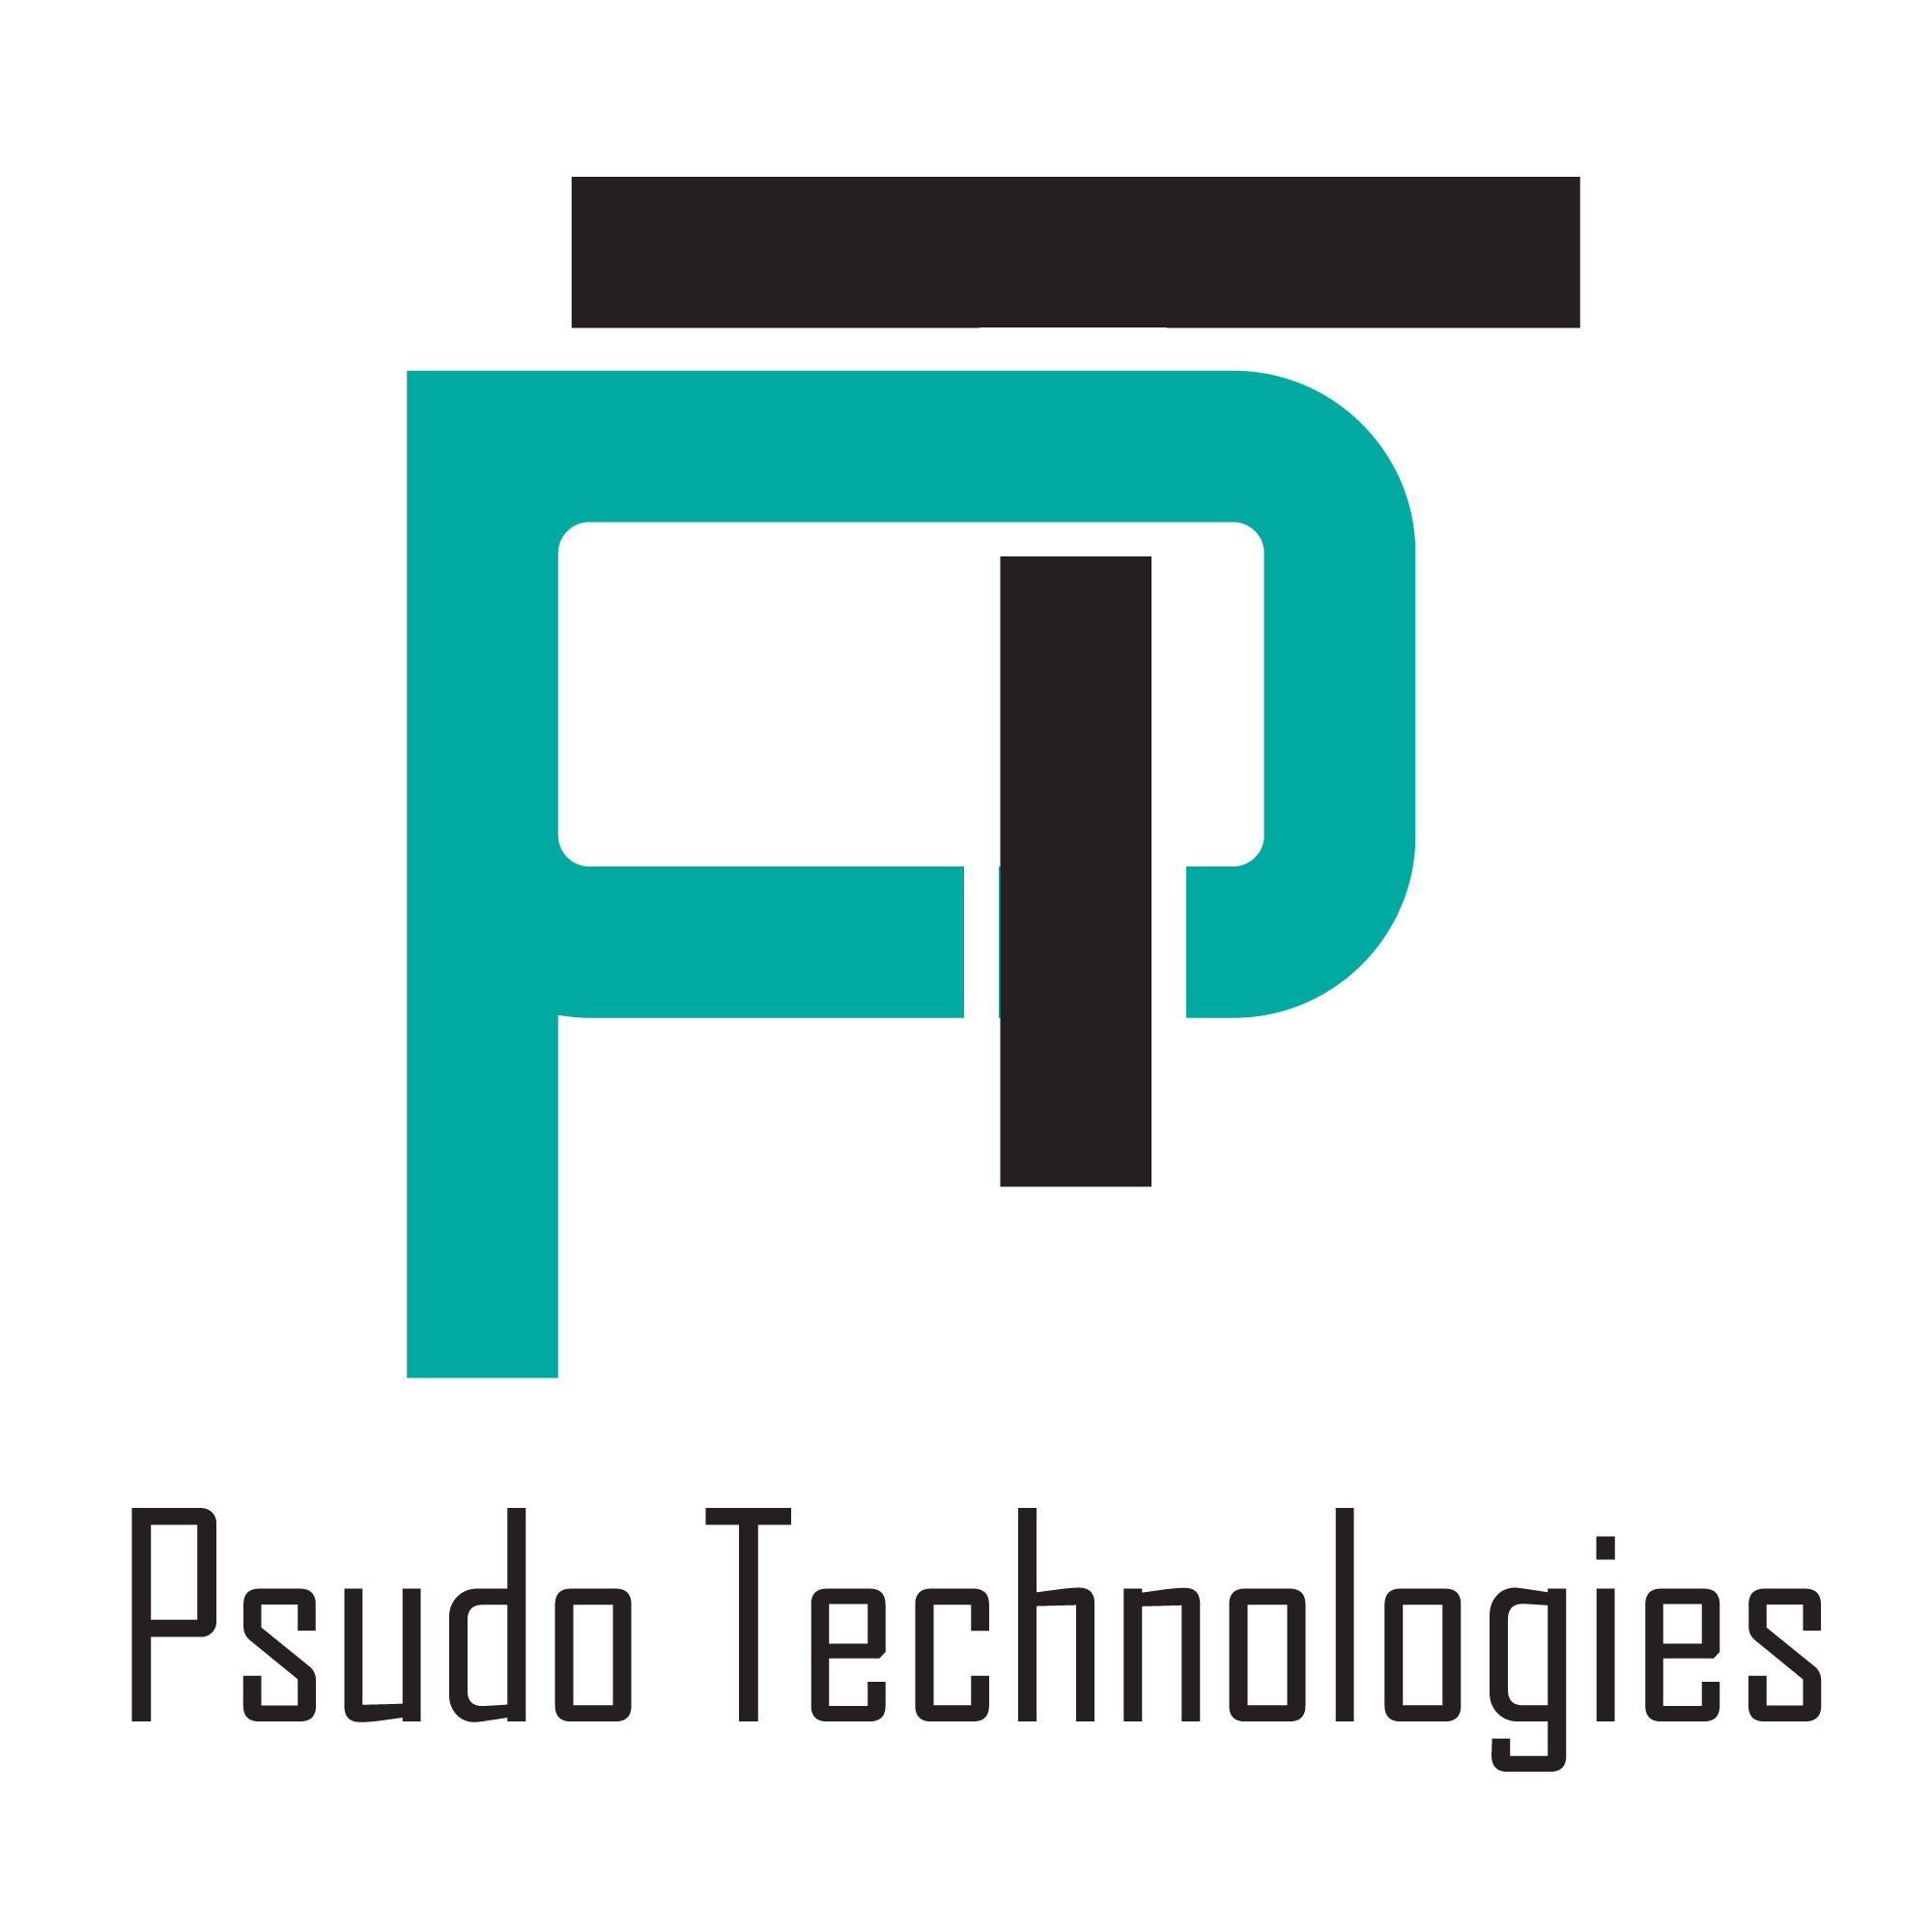 http://www.pakpositions.com/company/psudo-technologies